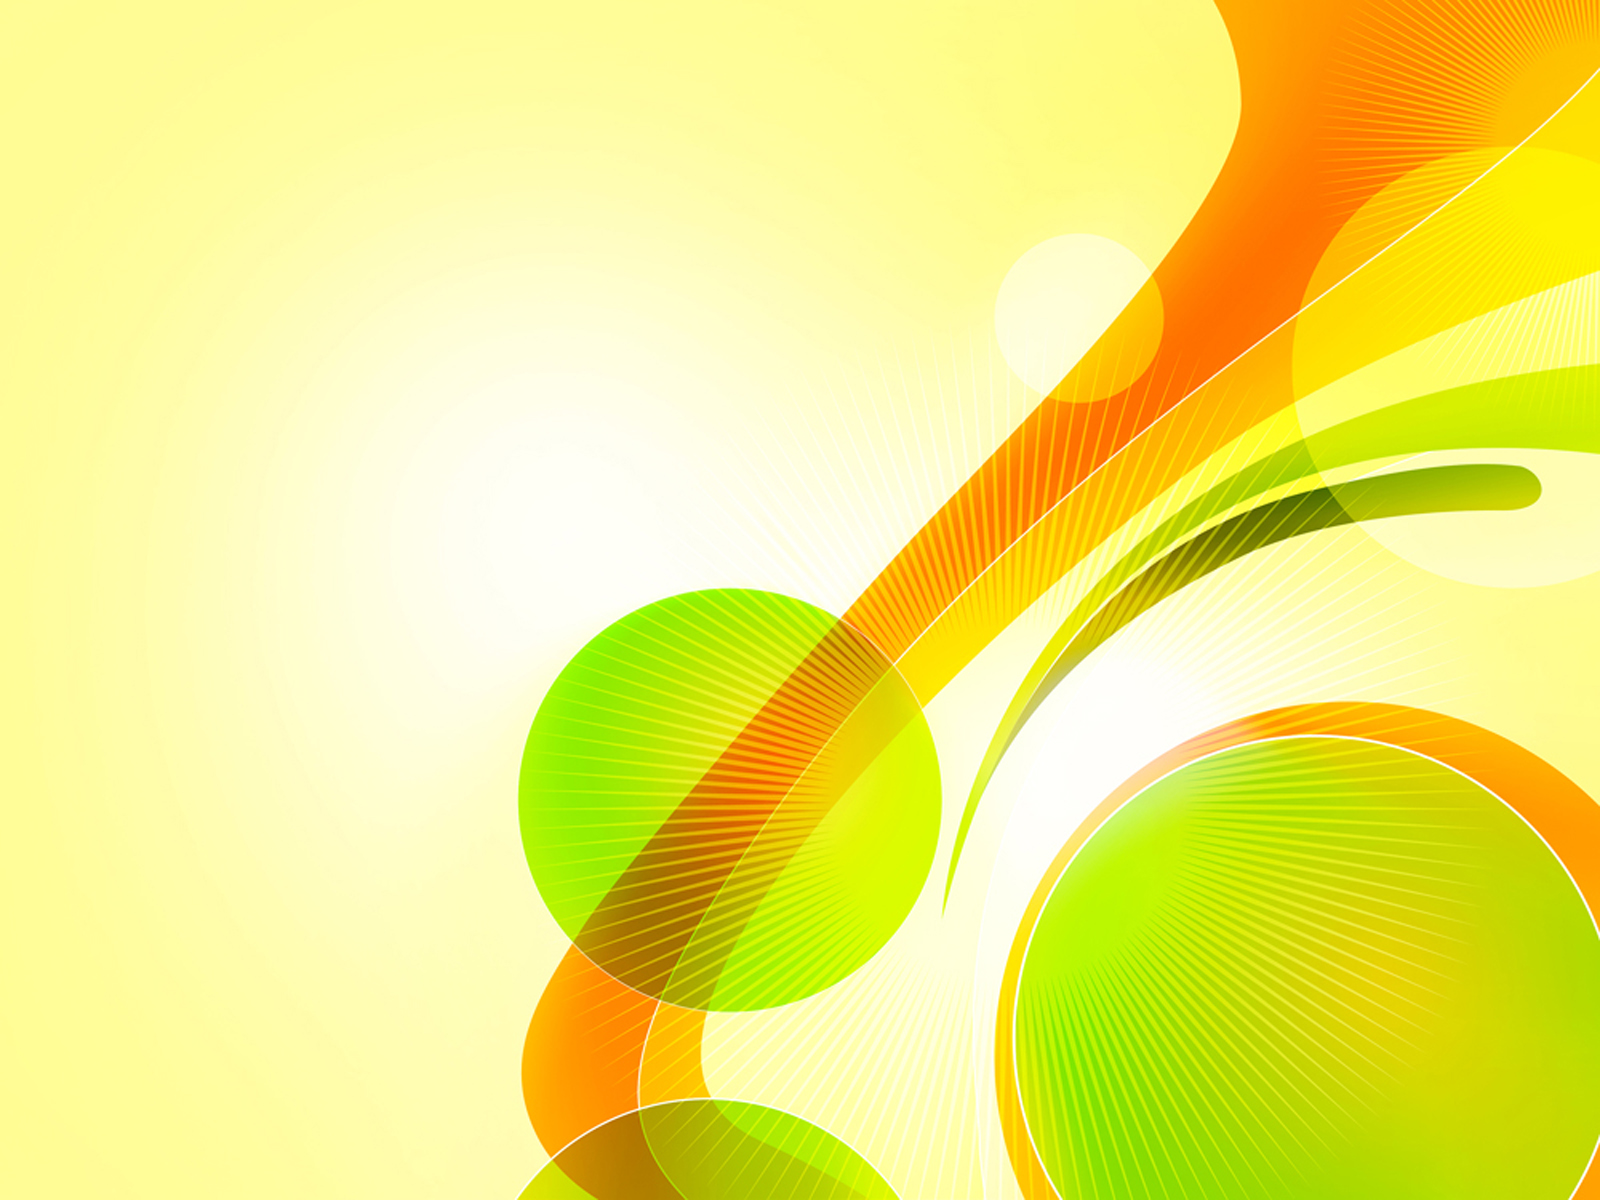 Circles and Swirls PPT Backgrounds